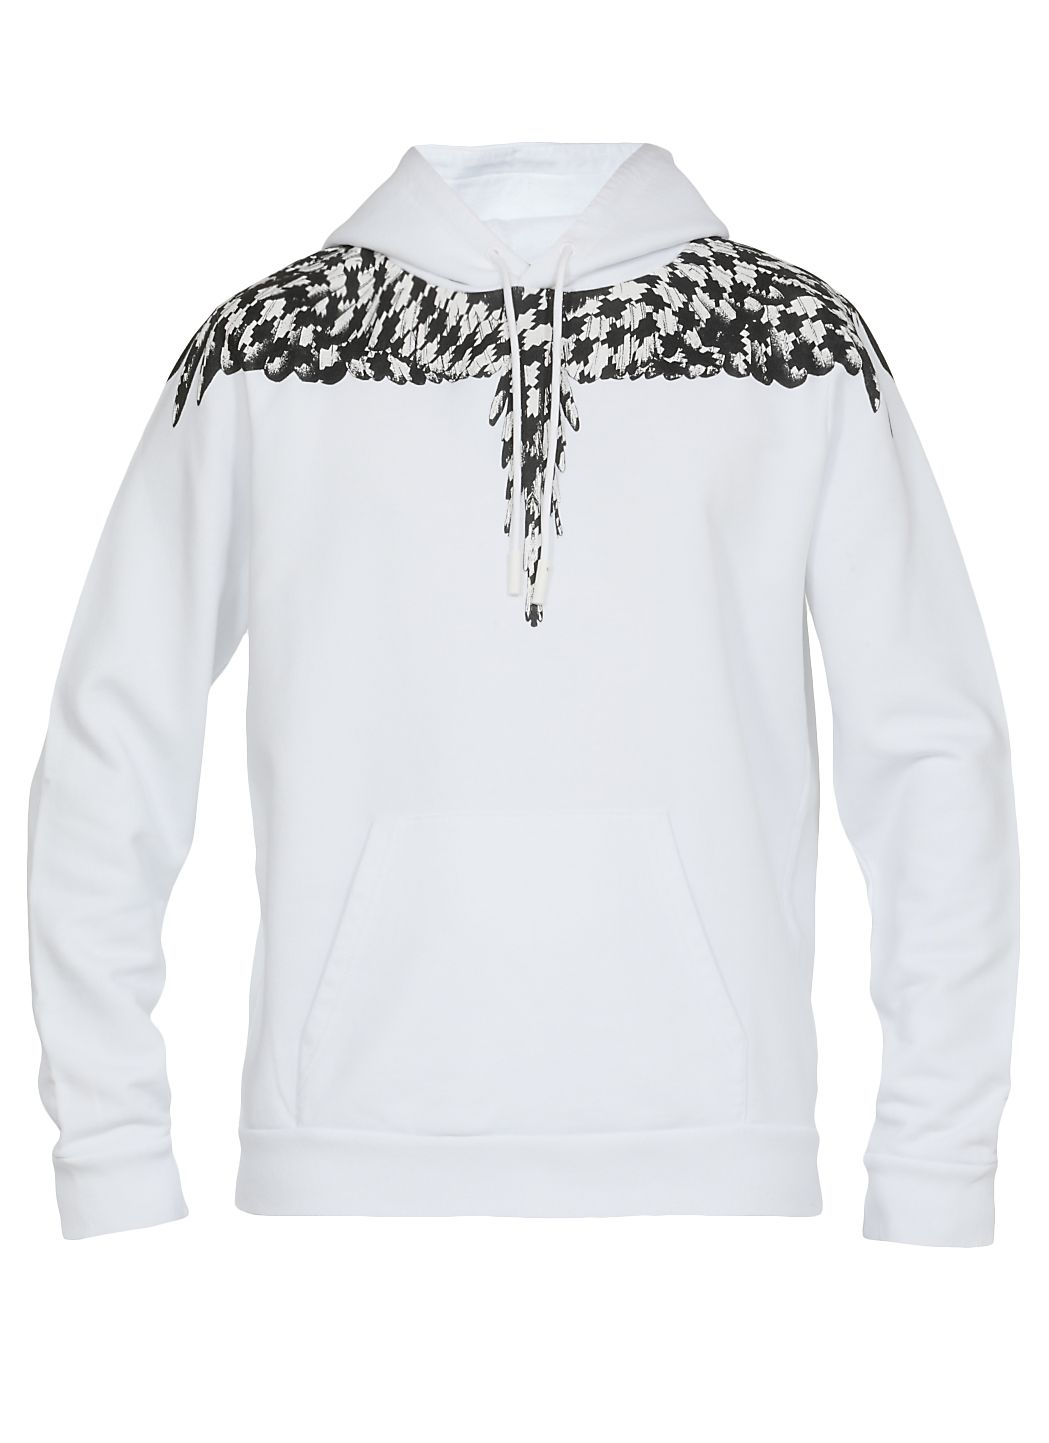 Cross pied de poule wings sweatshirt